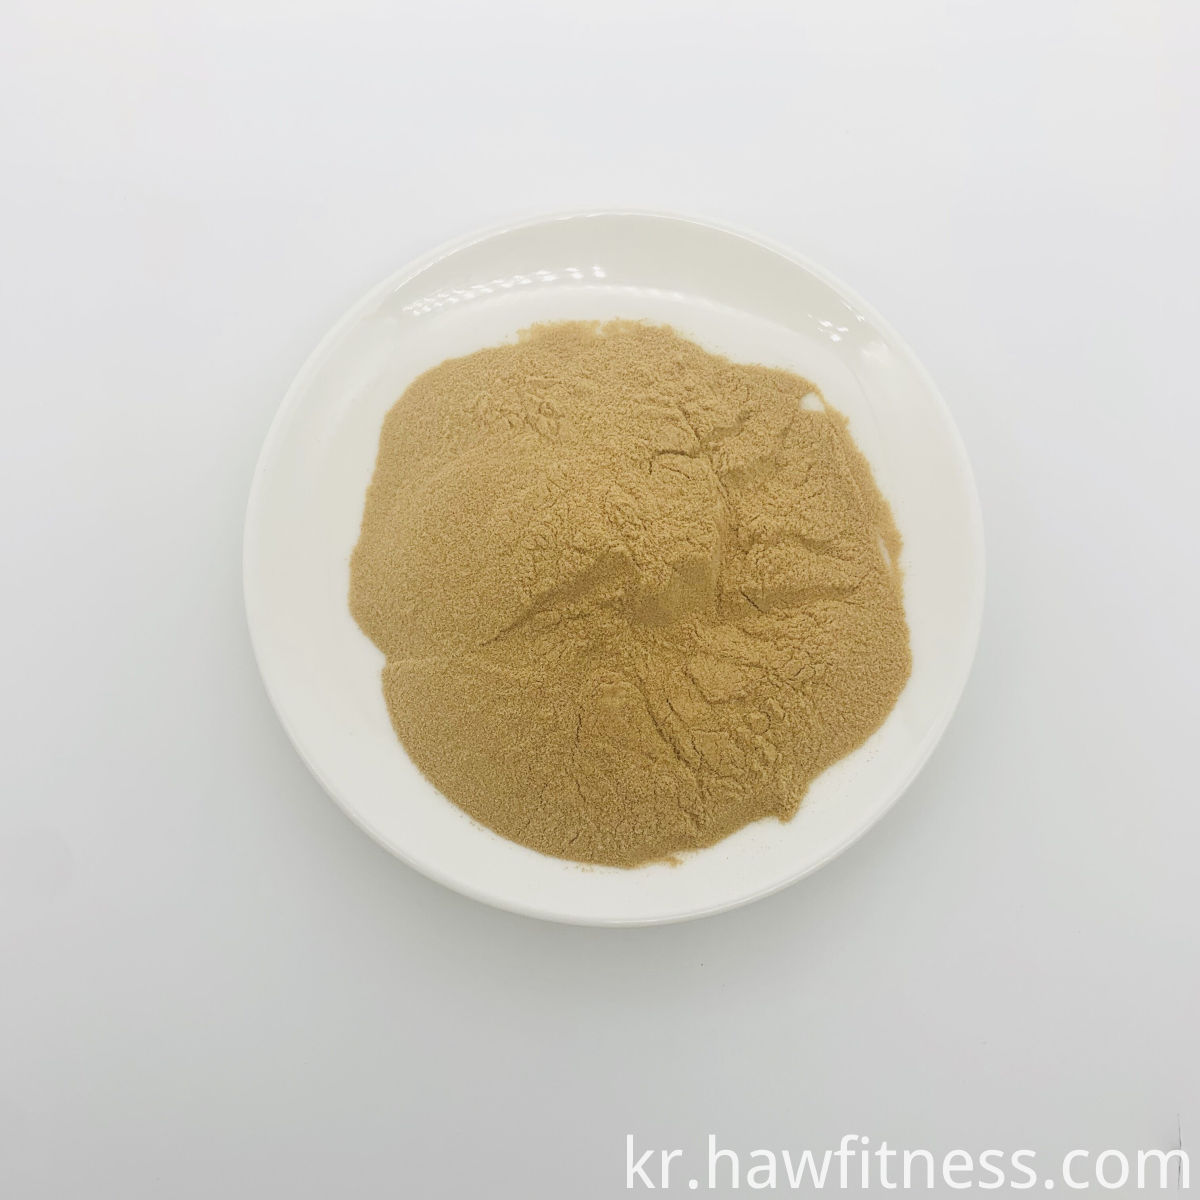 Coix Seed Extract Powder